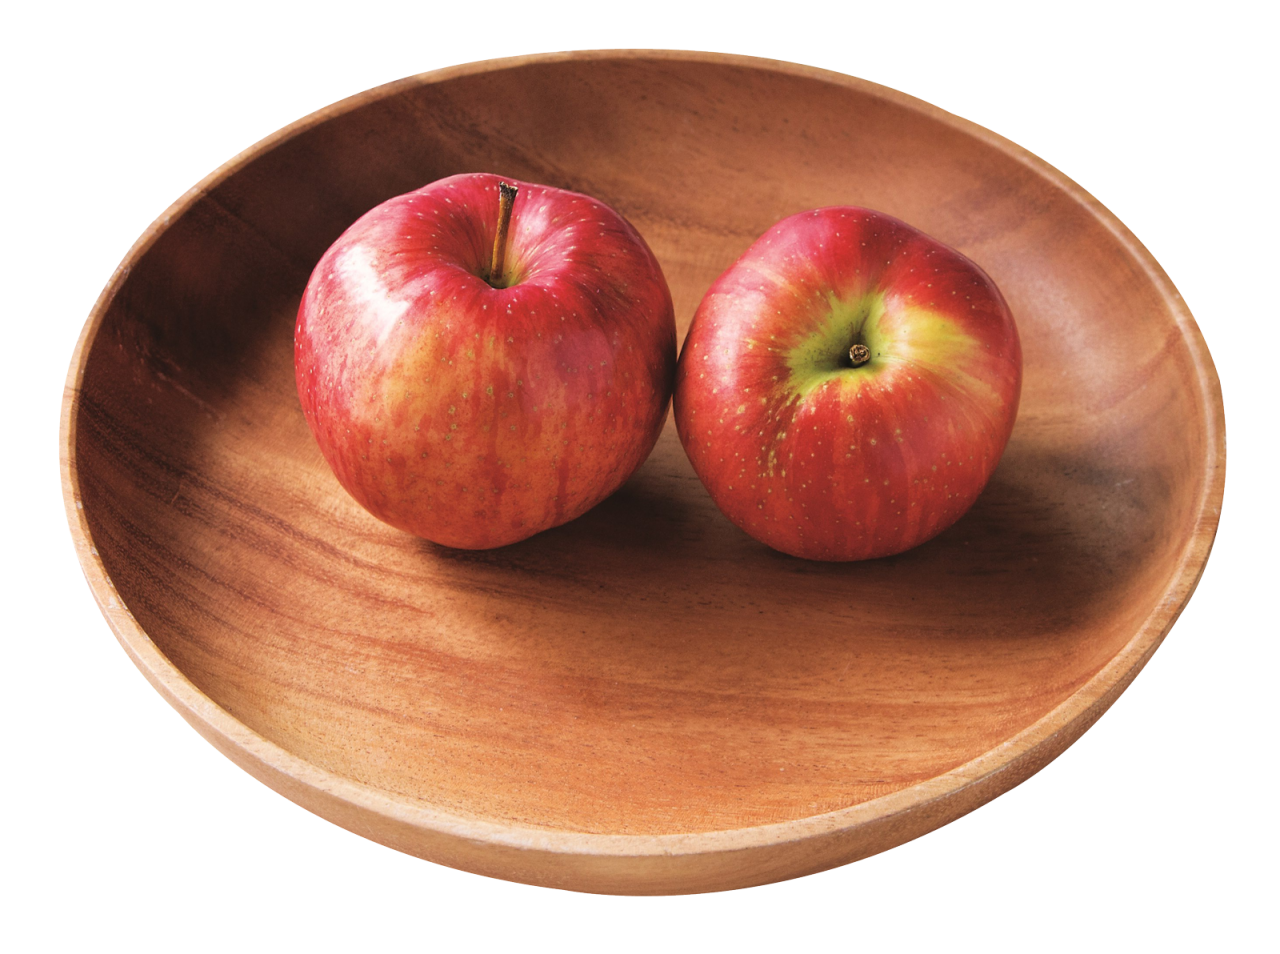 Two Red Apples in Plate PNG Image.